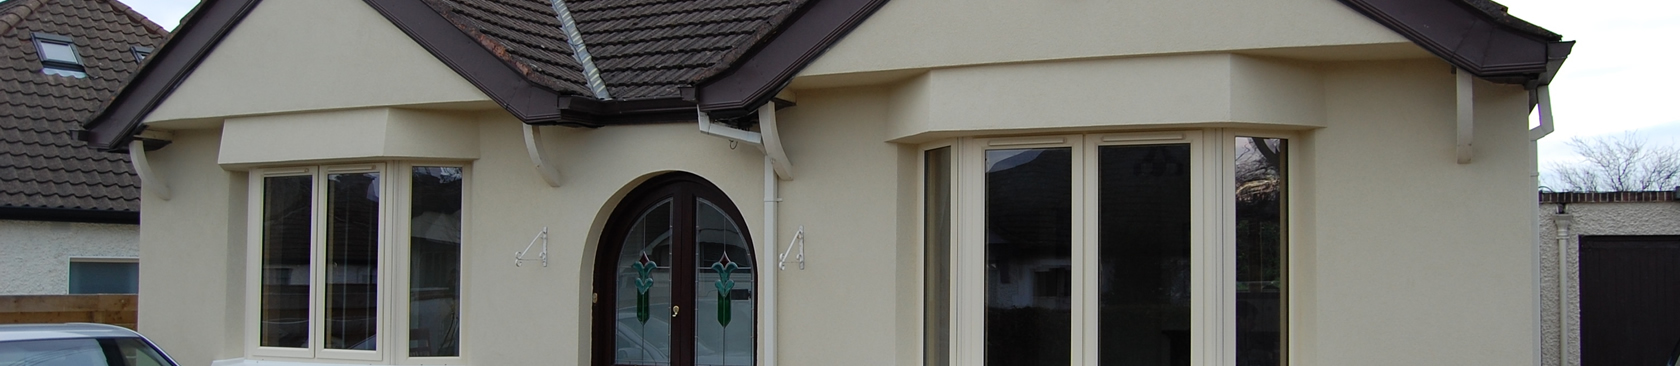 Rokzen, External Wall Insulation, EWI, Internal Wall Insulation, IWI